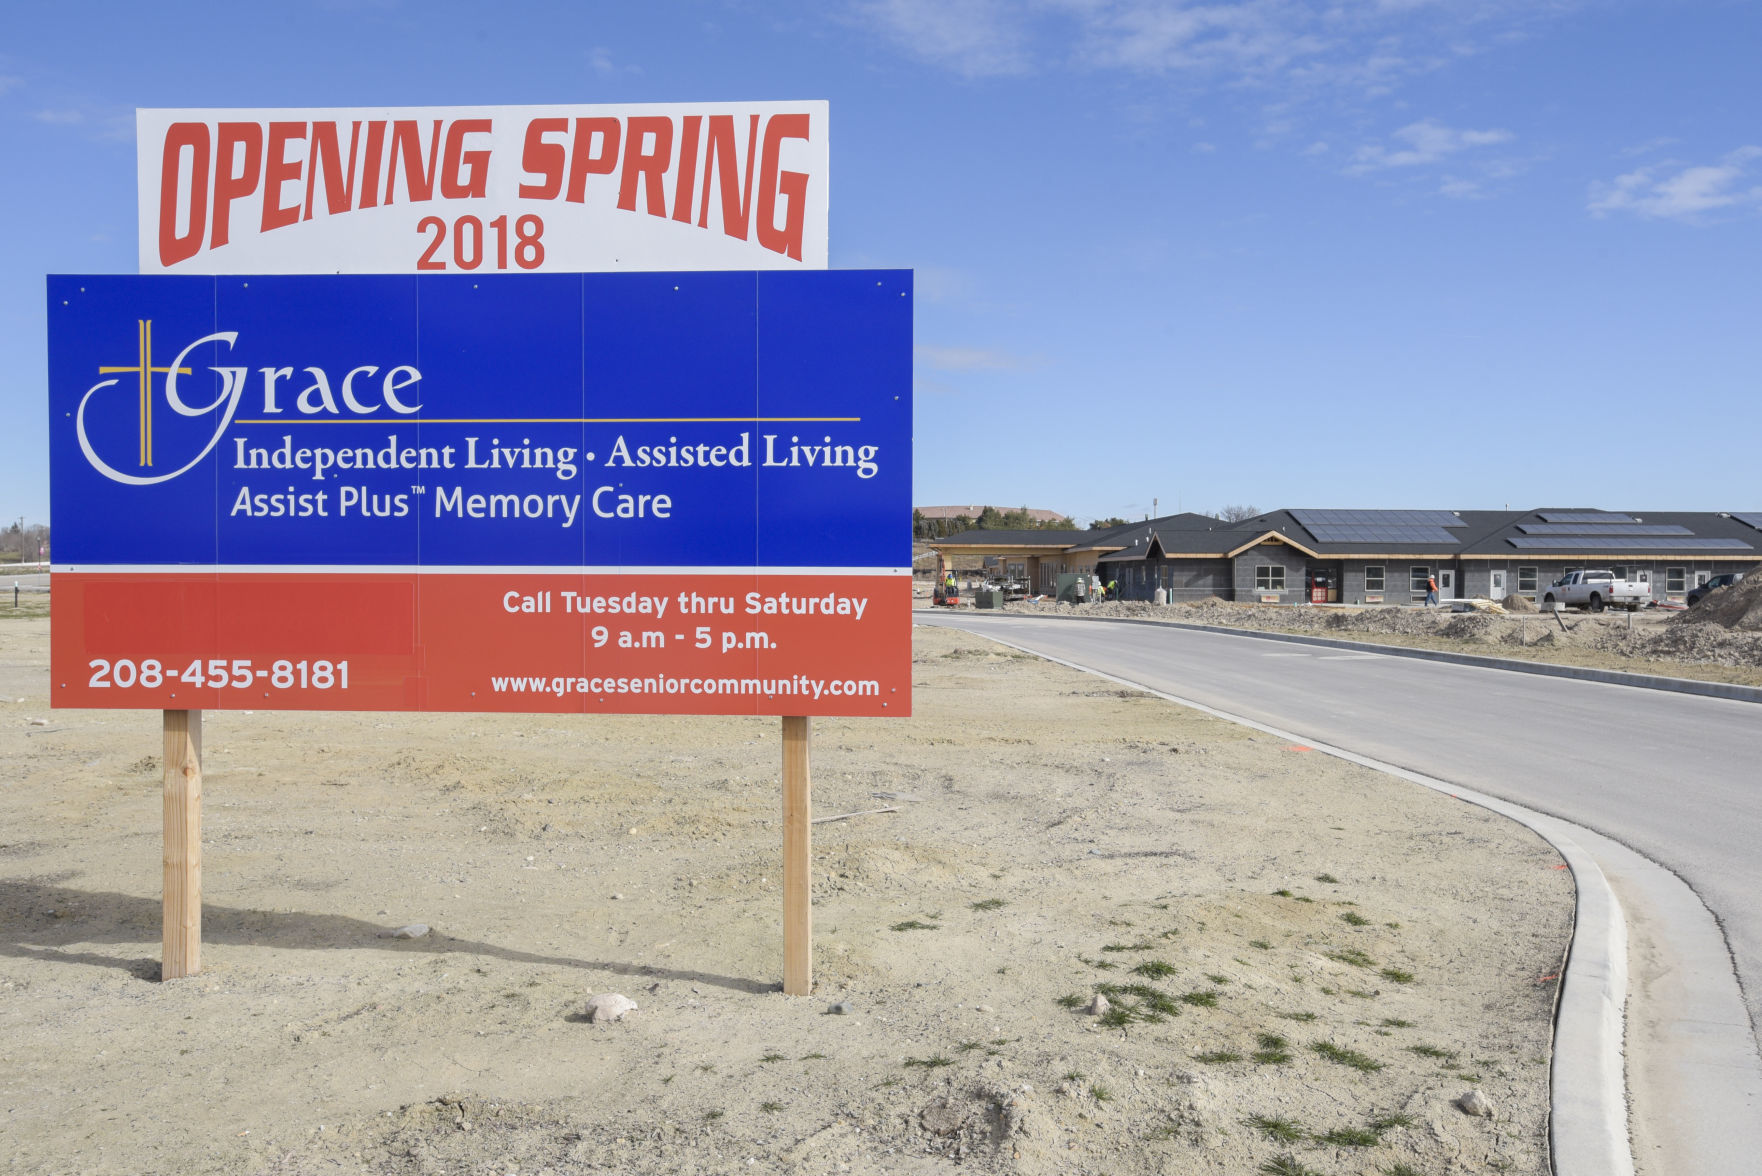 New Assisted Living Center To Open Soon In Caldwell | Local News |  Idahopress.com